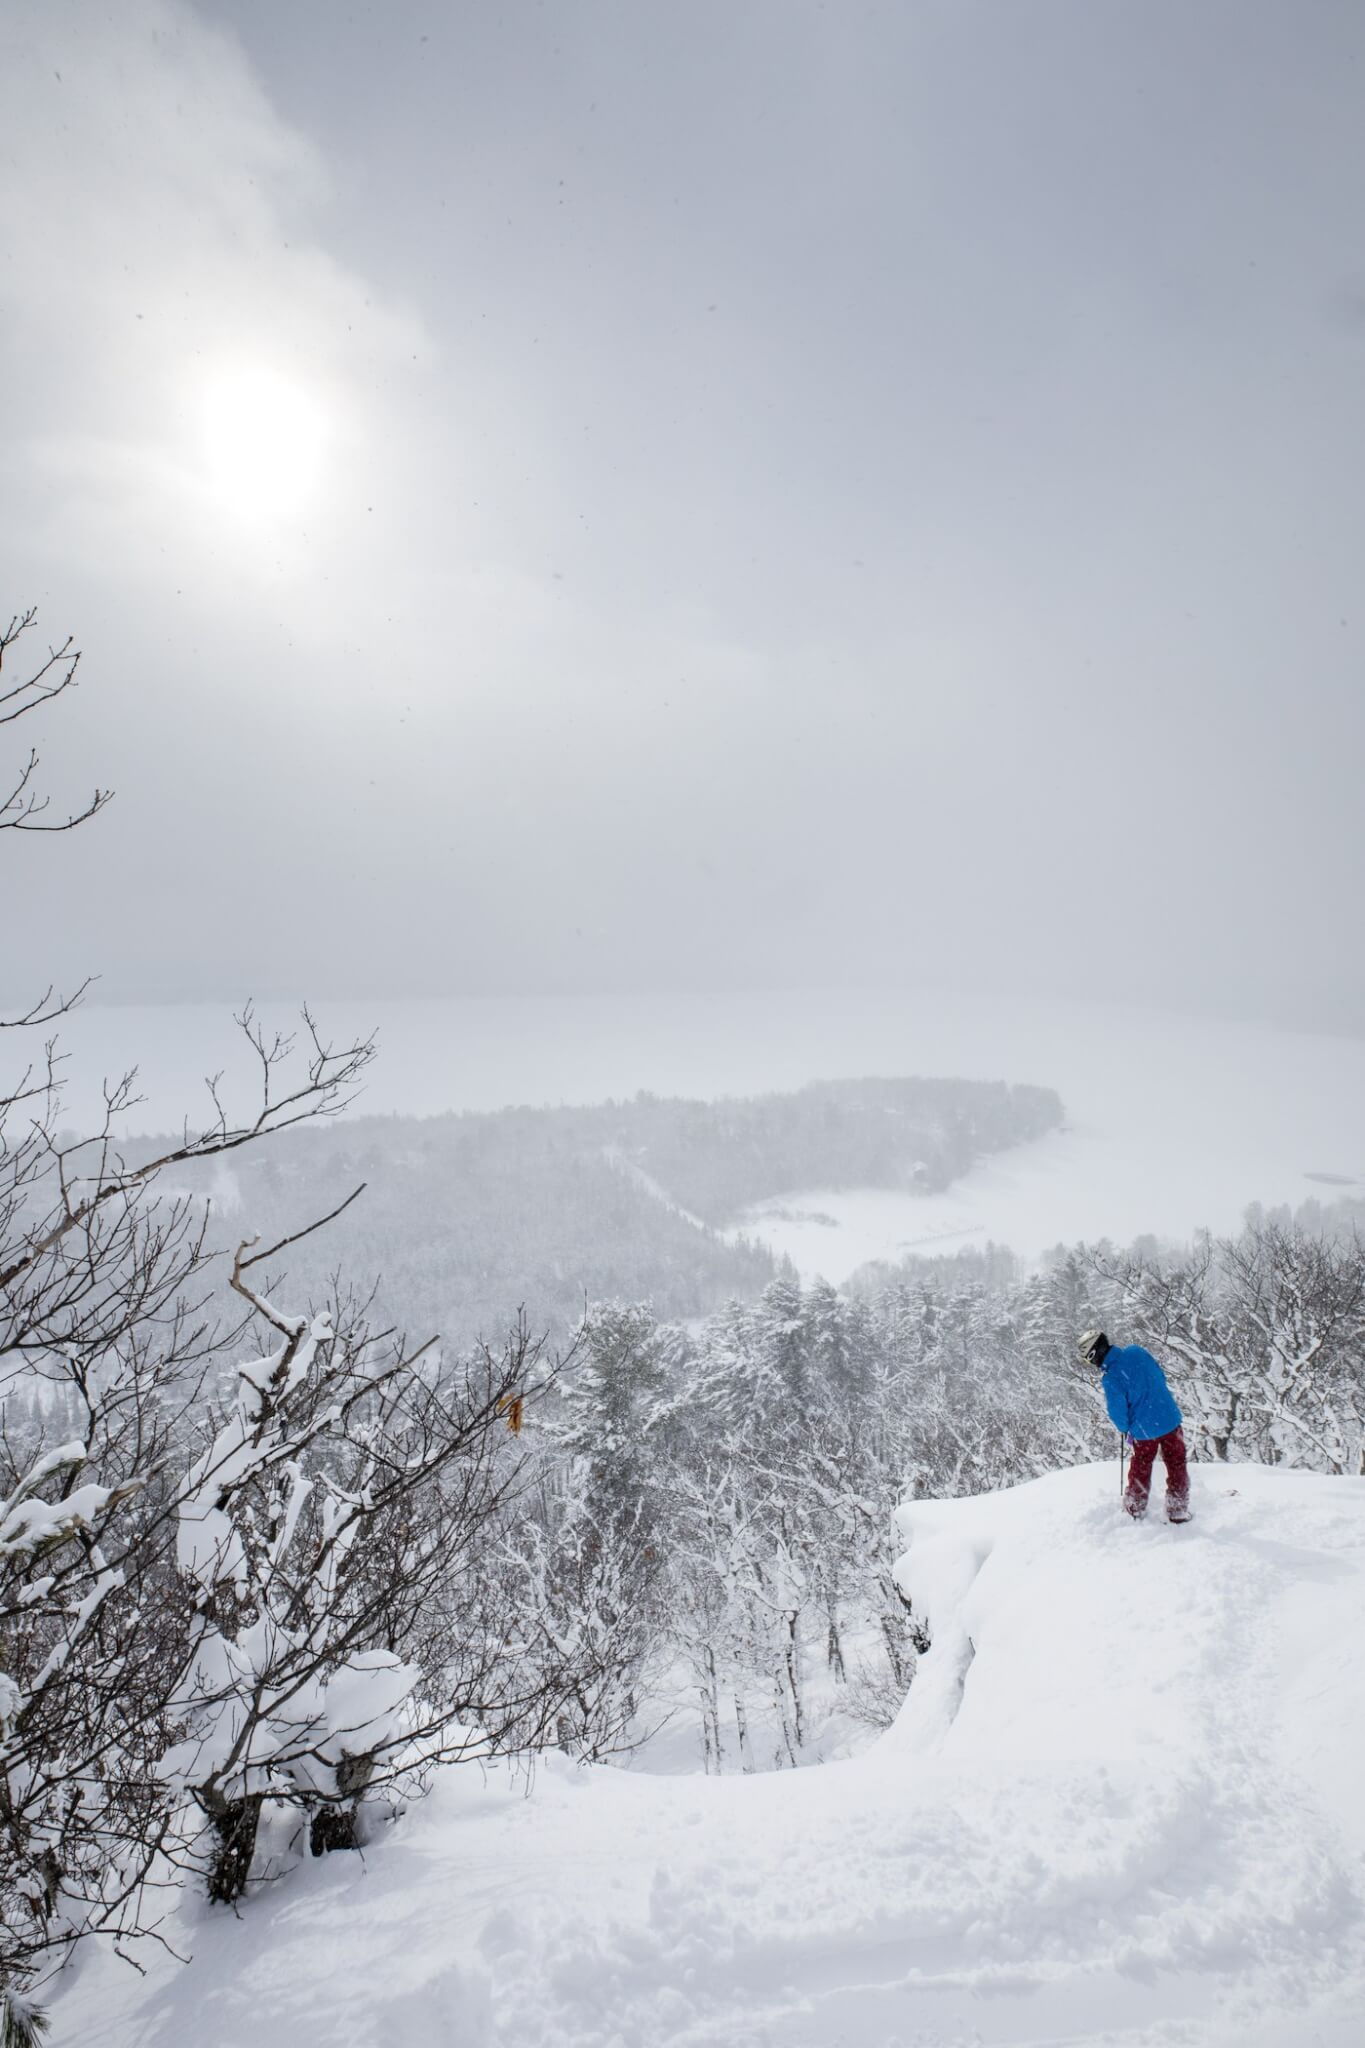 Snowboarder looking over cliff at Mount Bohemia with Lake Superior in the distance